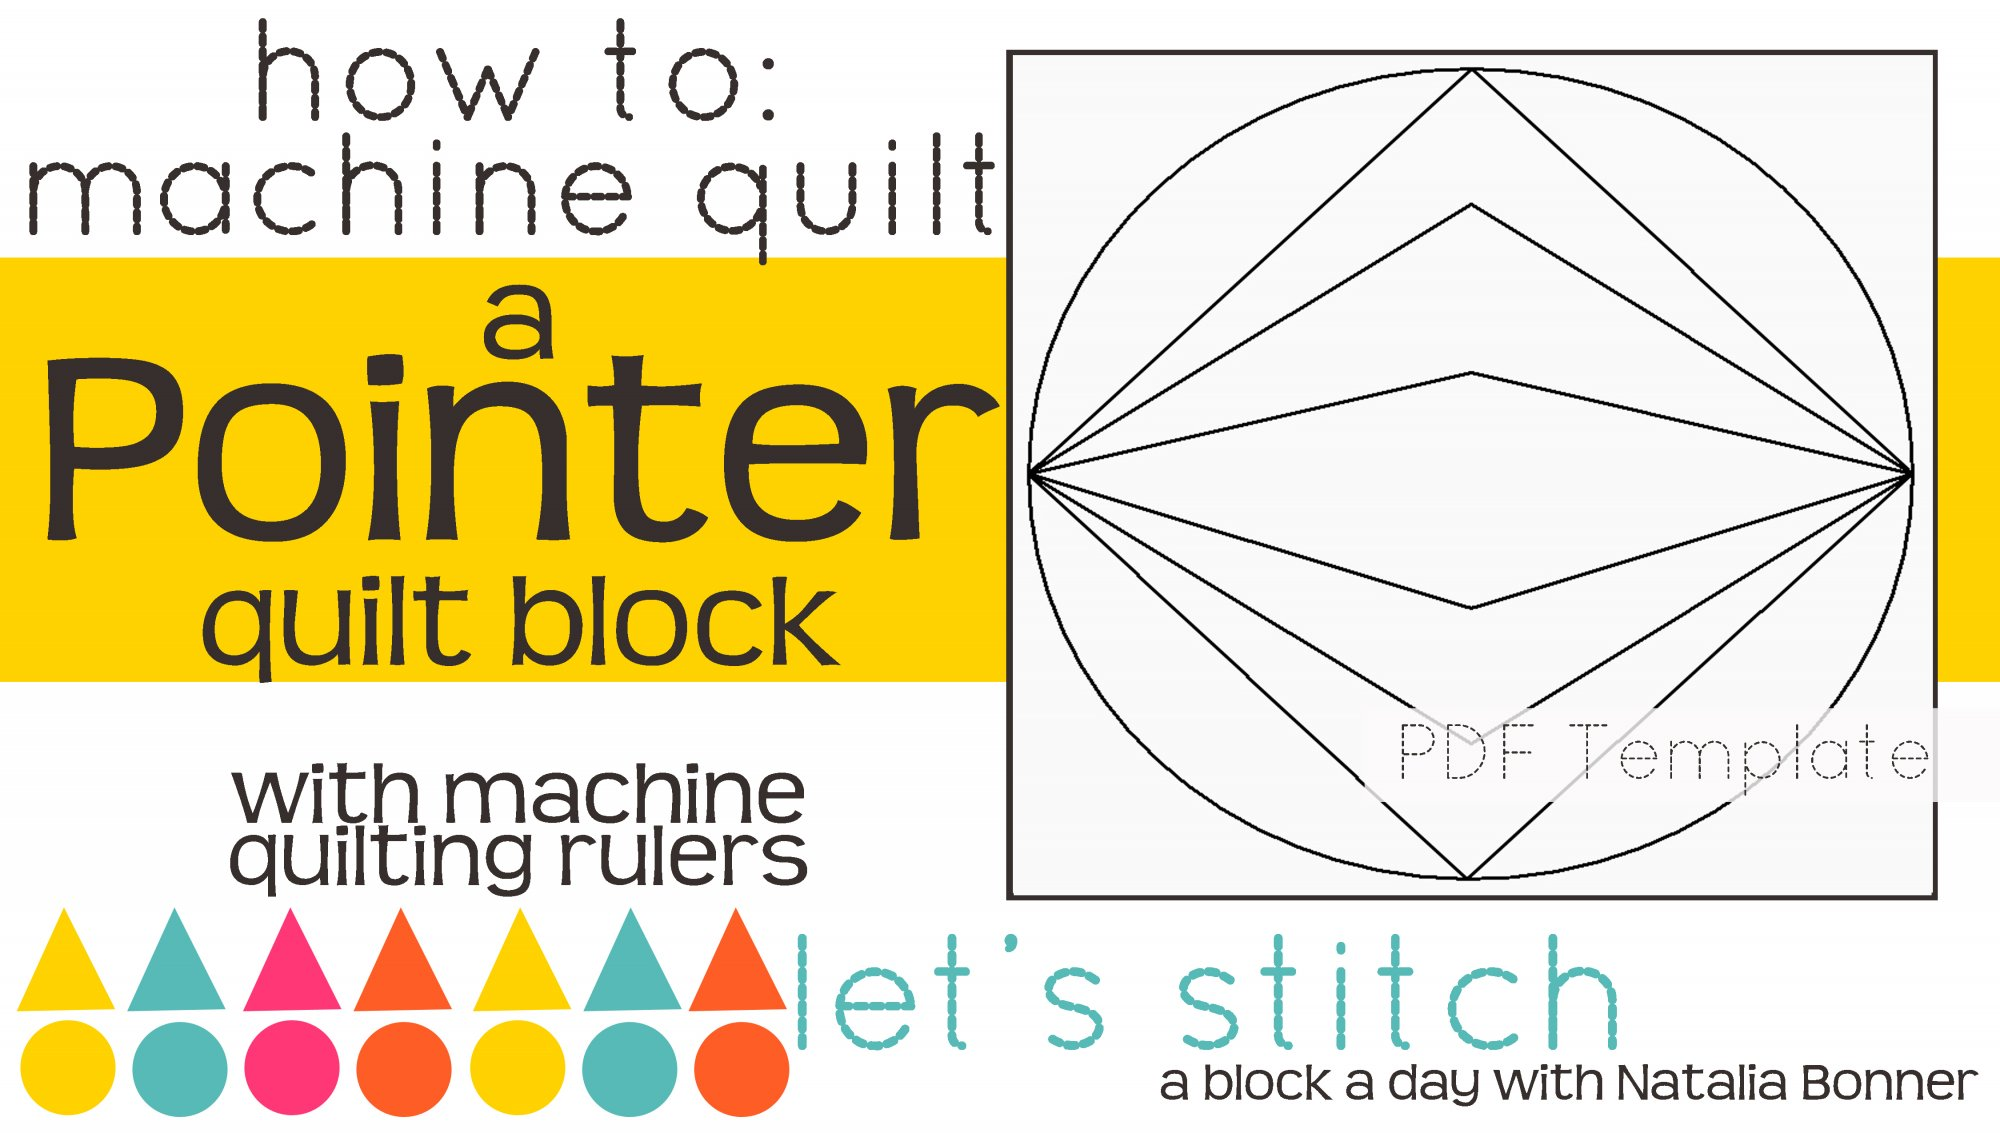 Let's Stitch - A Block a Day With Natalia Bonner - PDF - Pointer